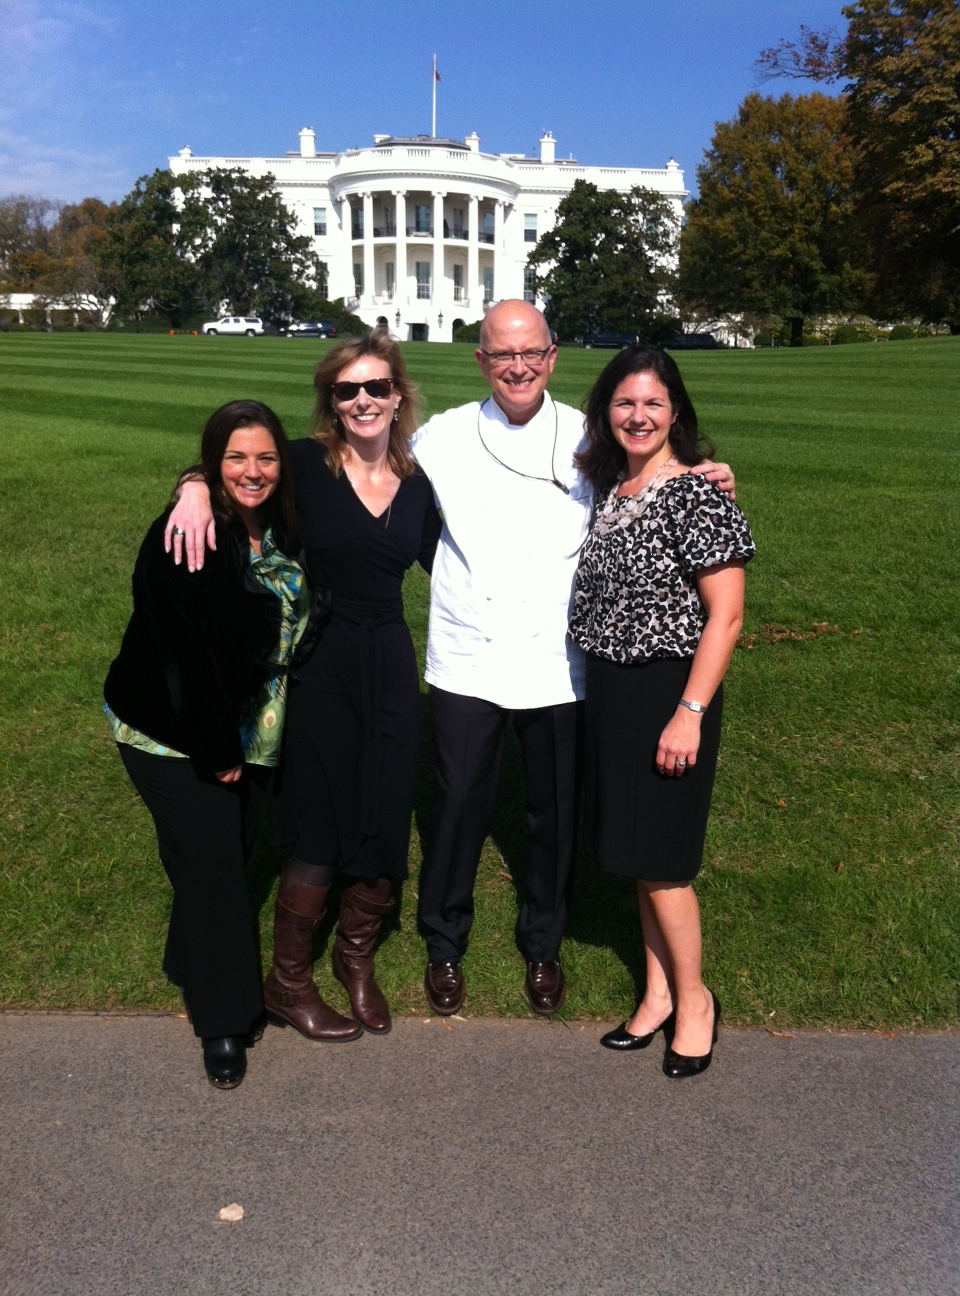 bill-and-girls-in-front-of-white-house.jpg